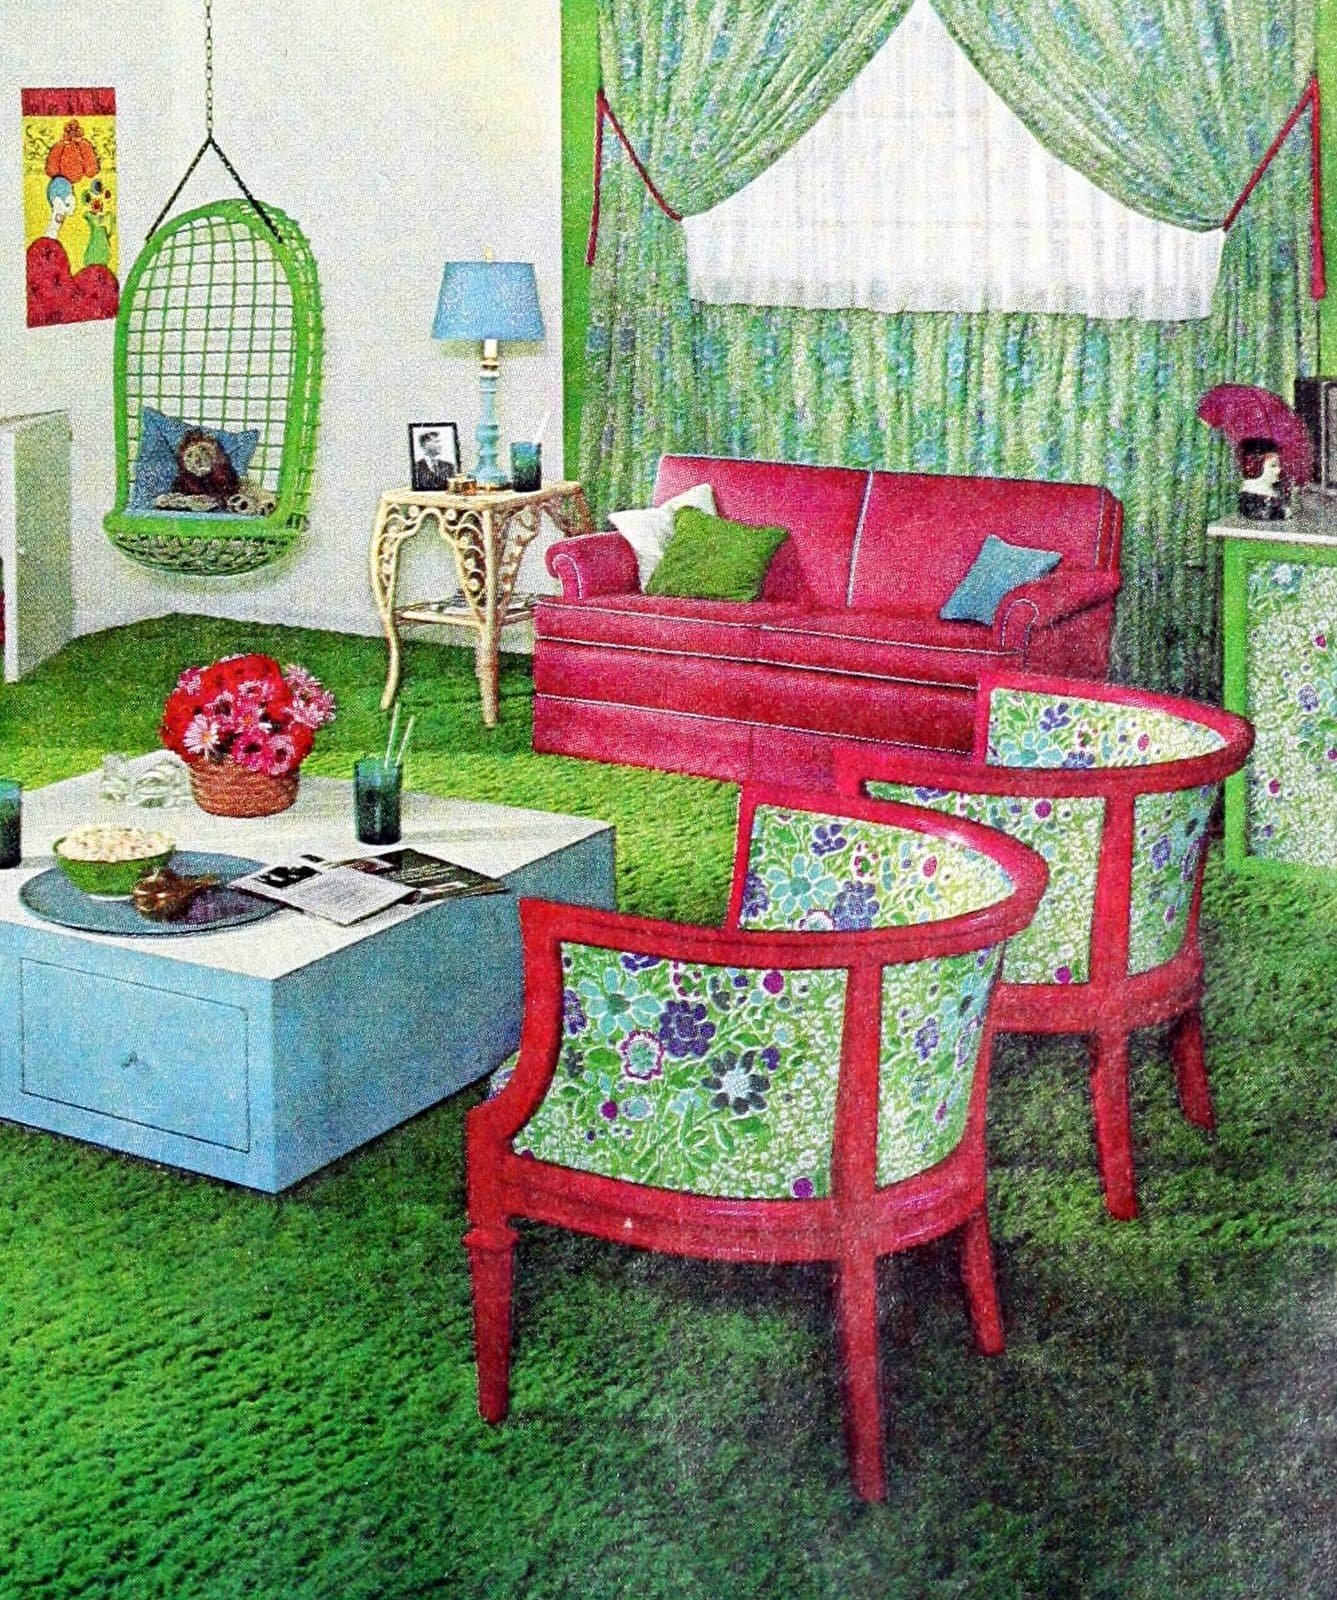 Colorful bedroom decor with curved chairs and a swinging chair (1967)